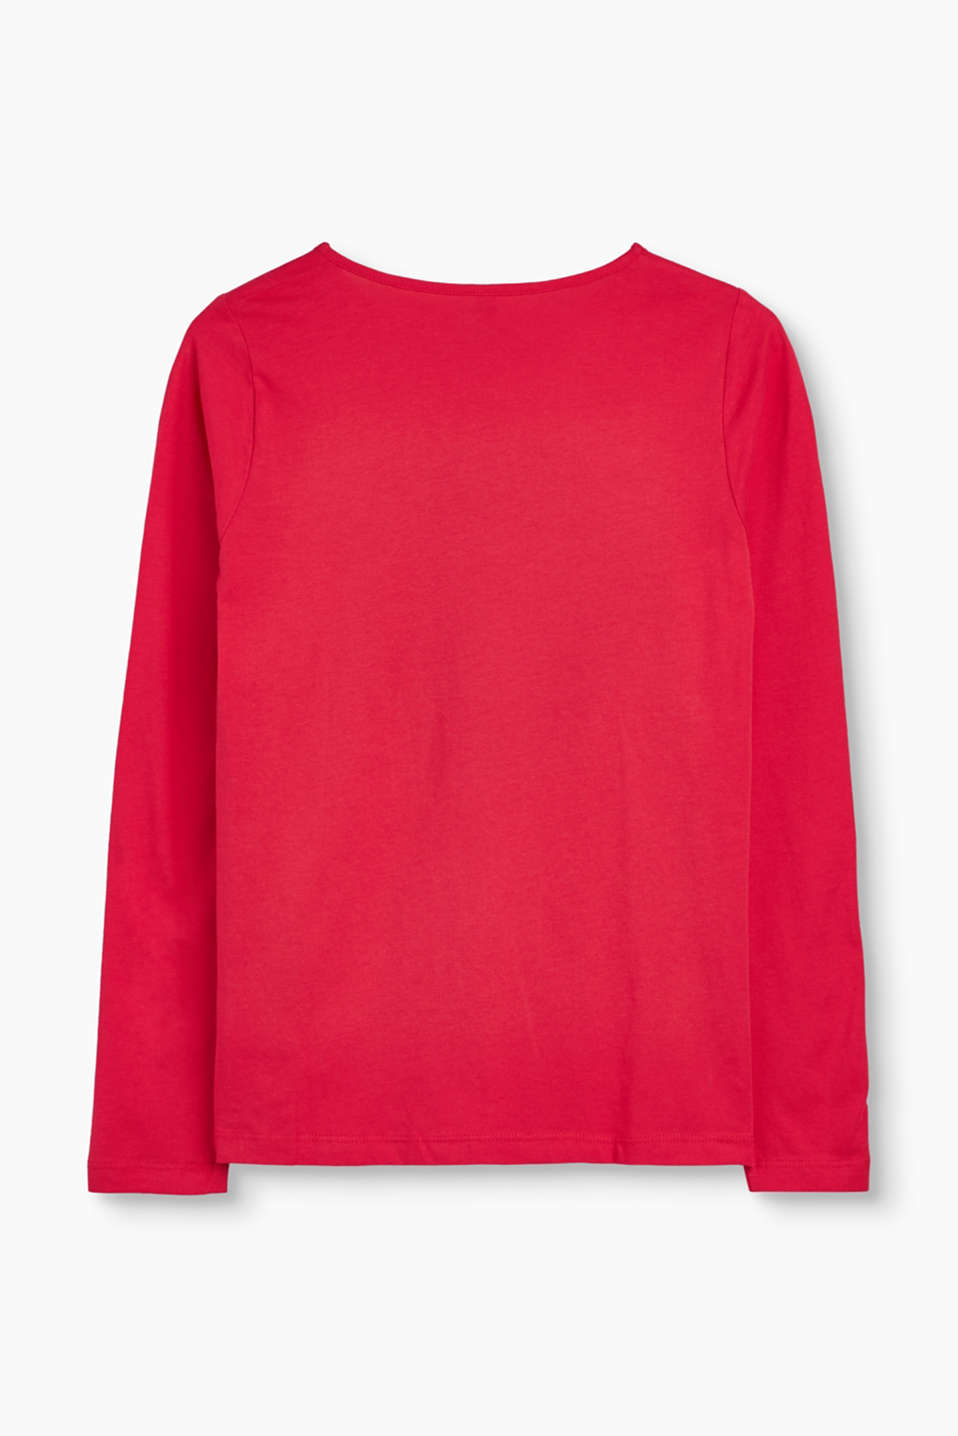 Statement long sleeve top, 100% cotton